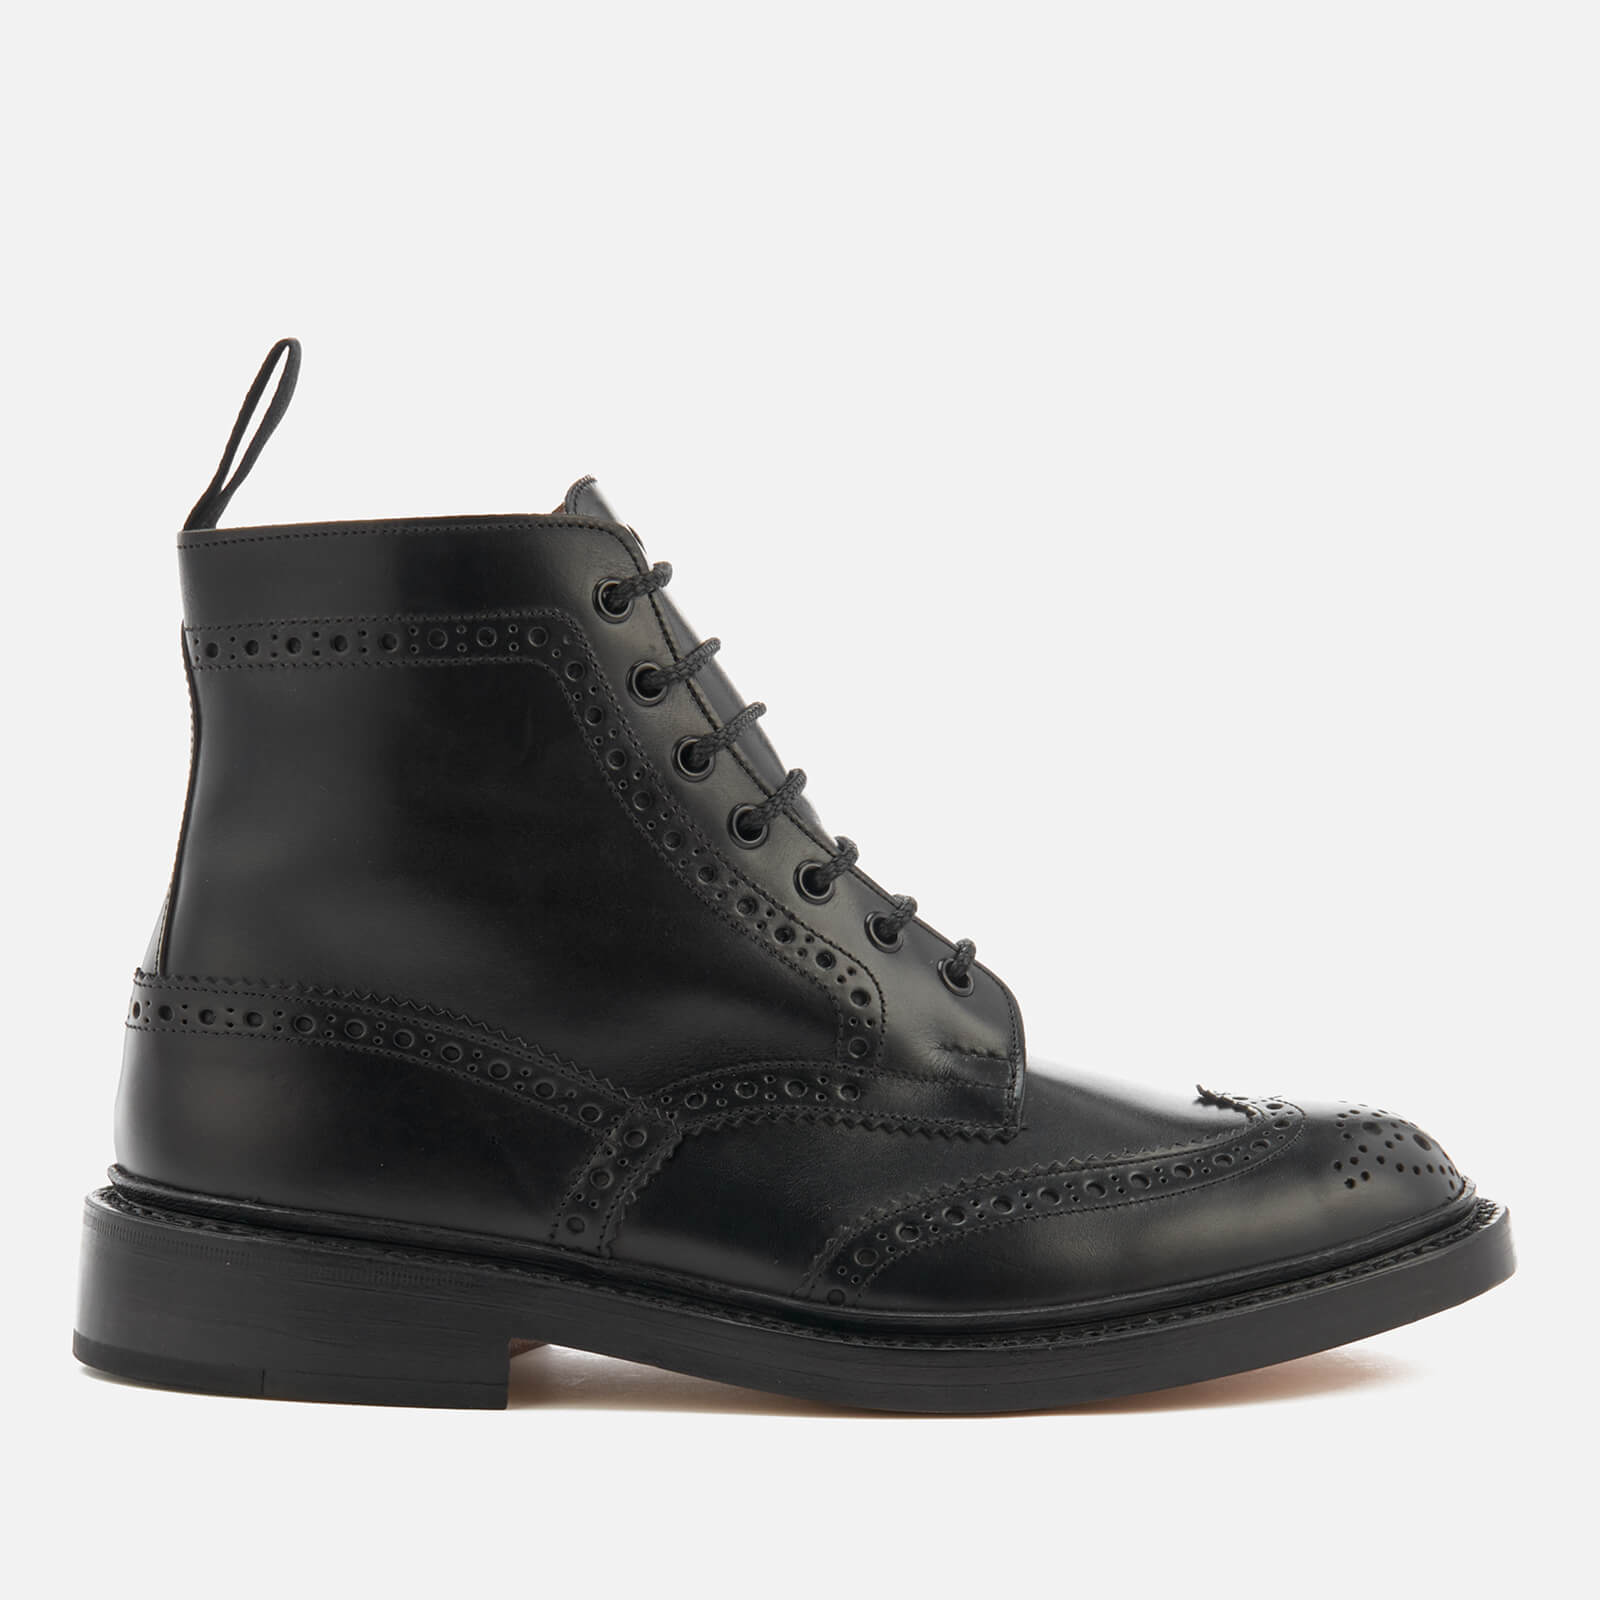 ce6e27a6b8c8 Tricker s Men s Stow Leather Brogue Lace Up Boots - Black - Free UK  Delivery over £50